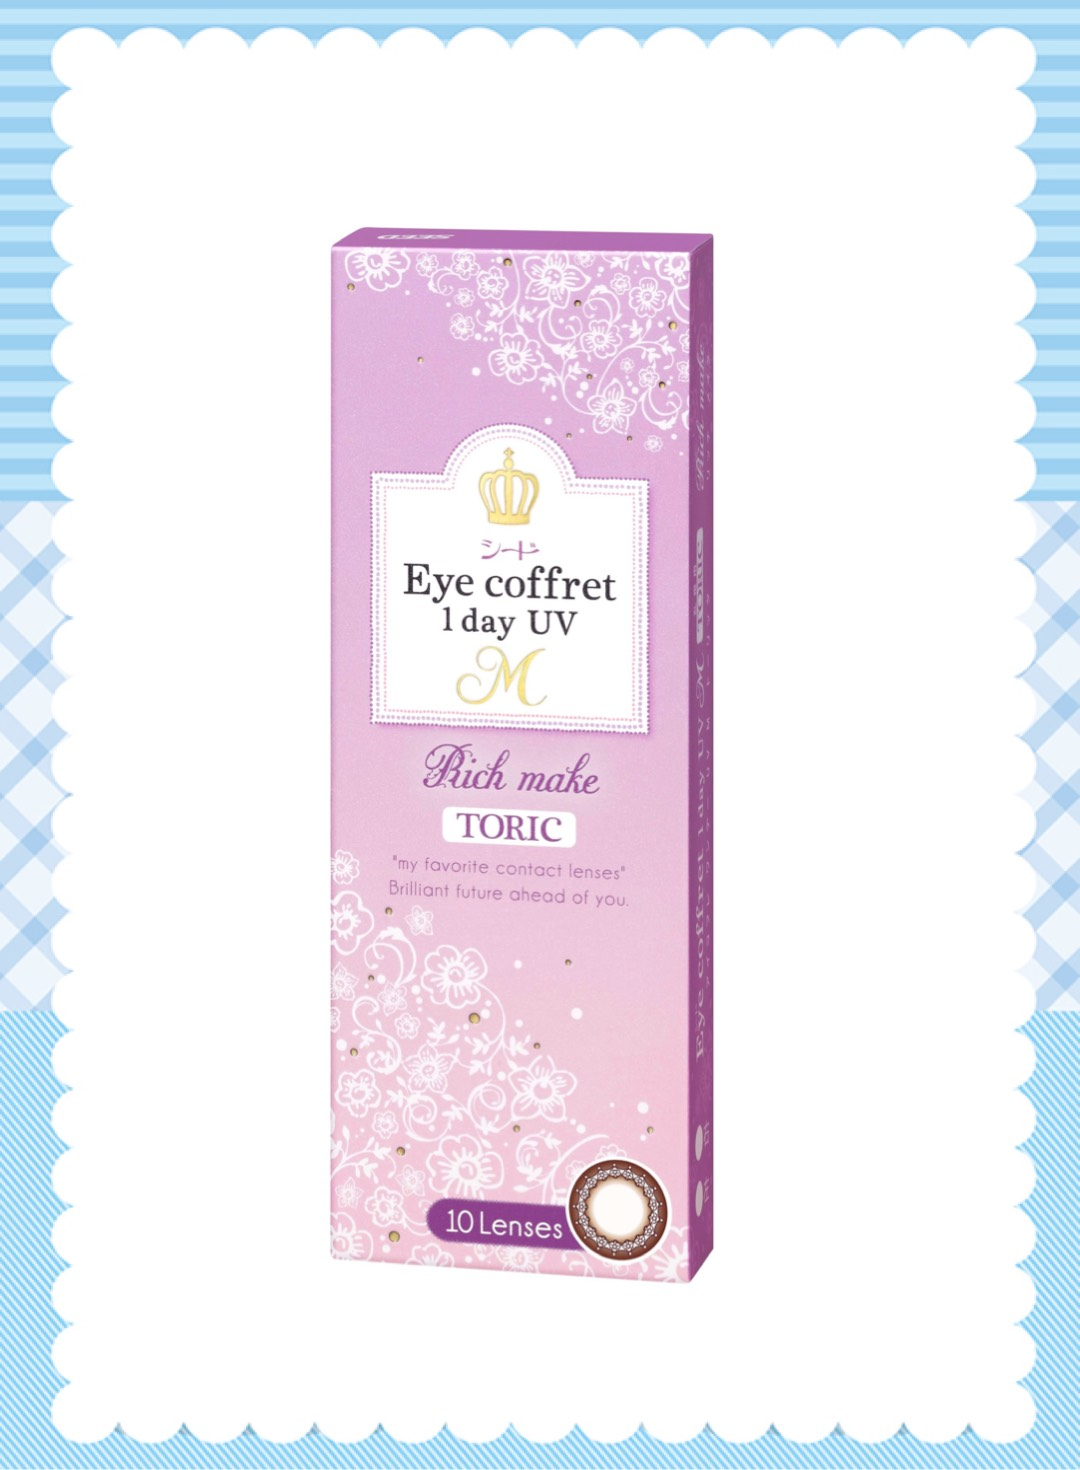 Eye coffret 1day UV-Mトーリック 10枚パック